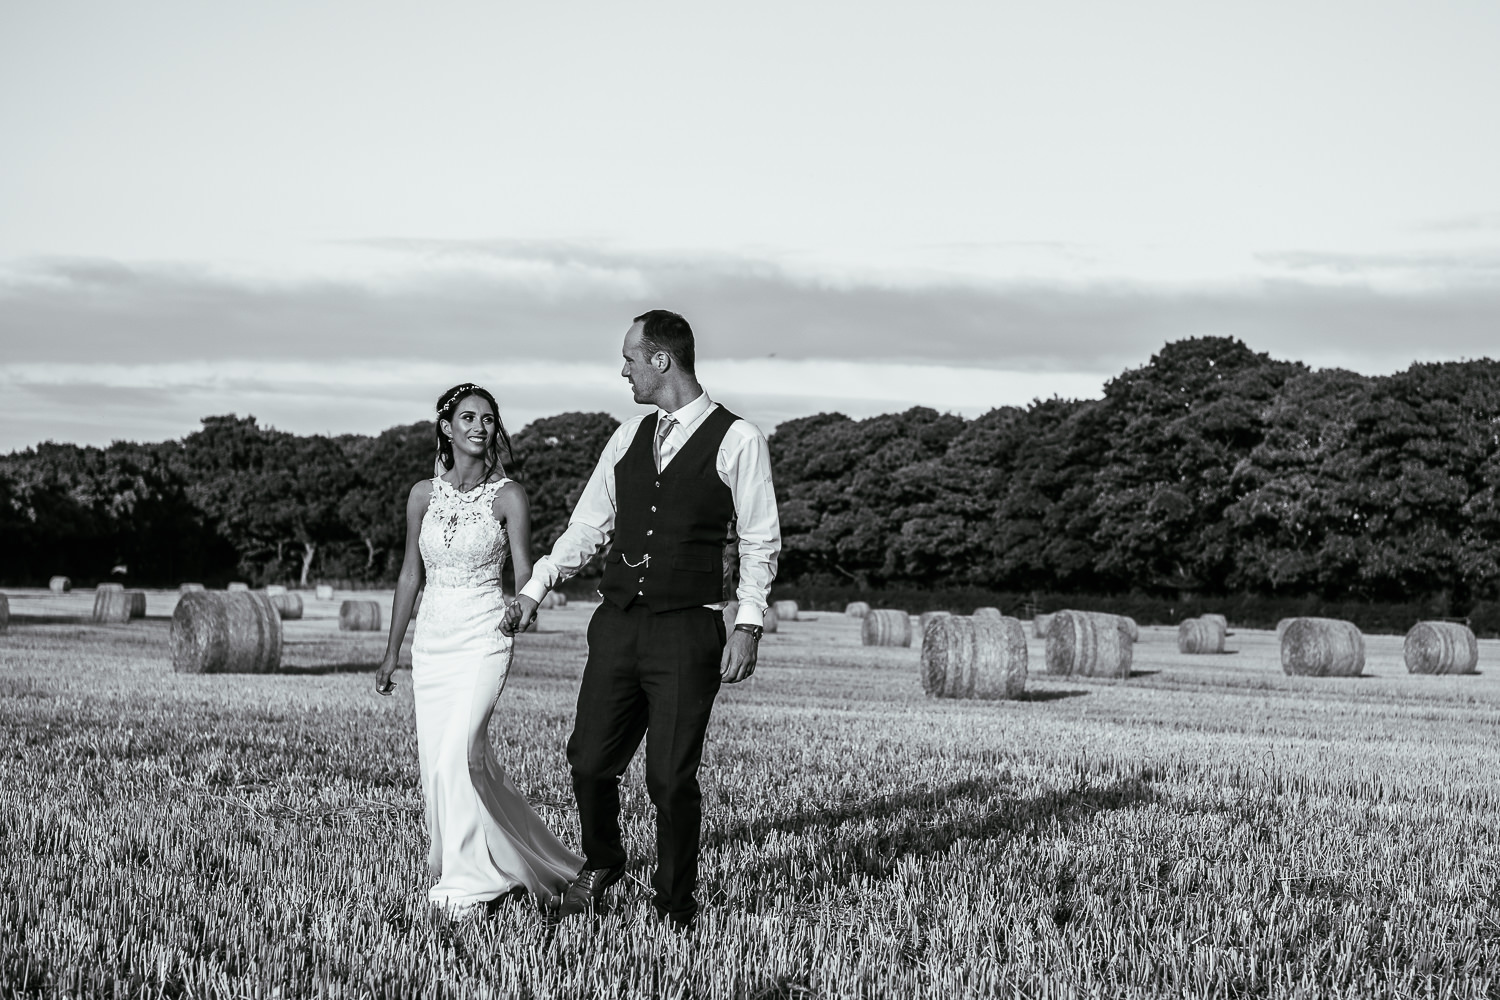 Bride and groom walking in fields with hay bales